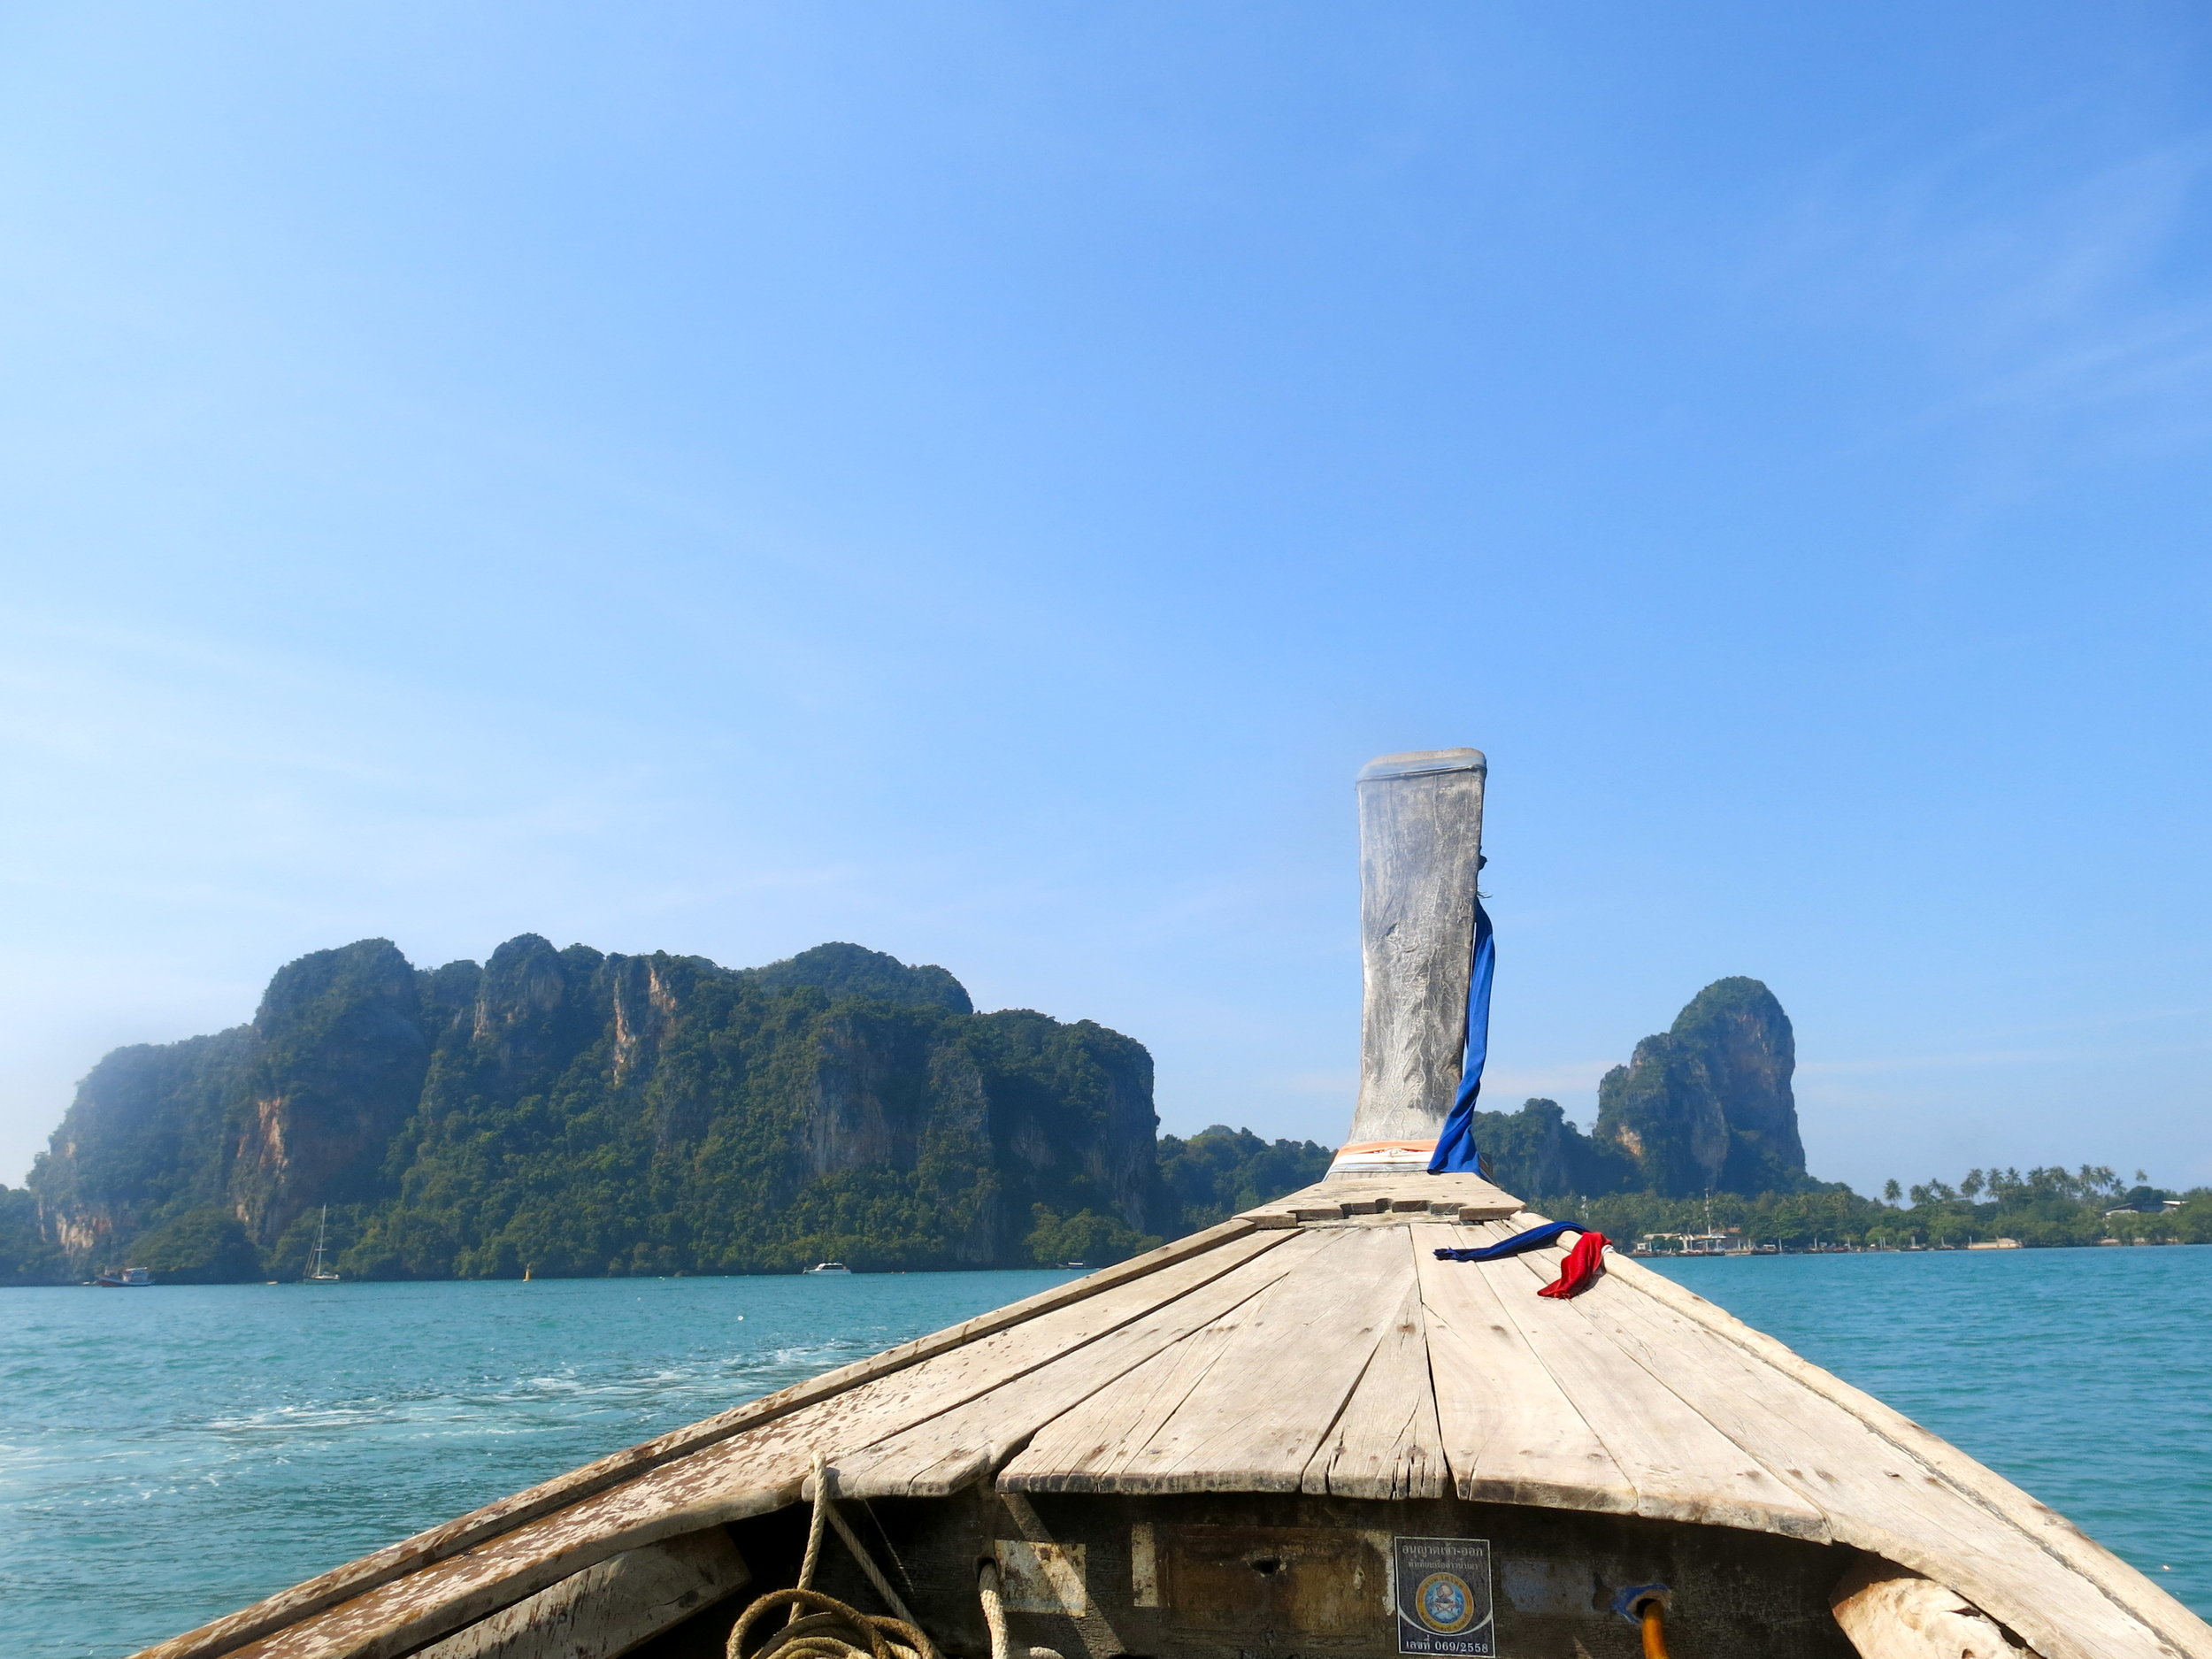 View on Railay peninsula from a long-tail boat